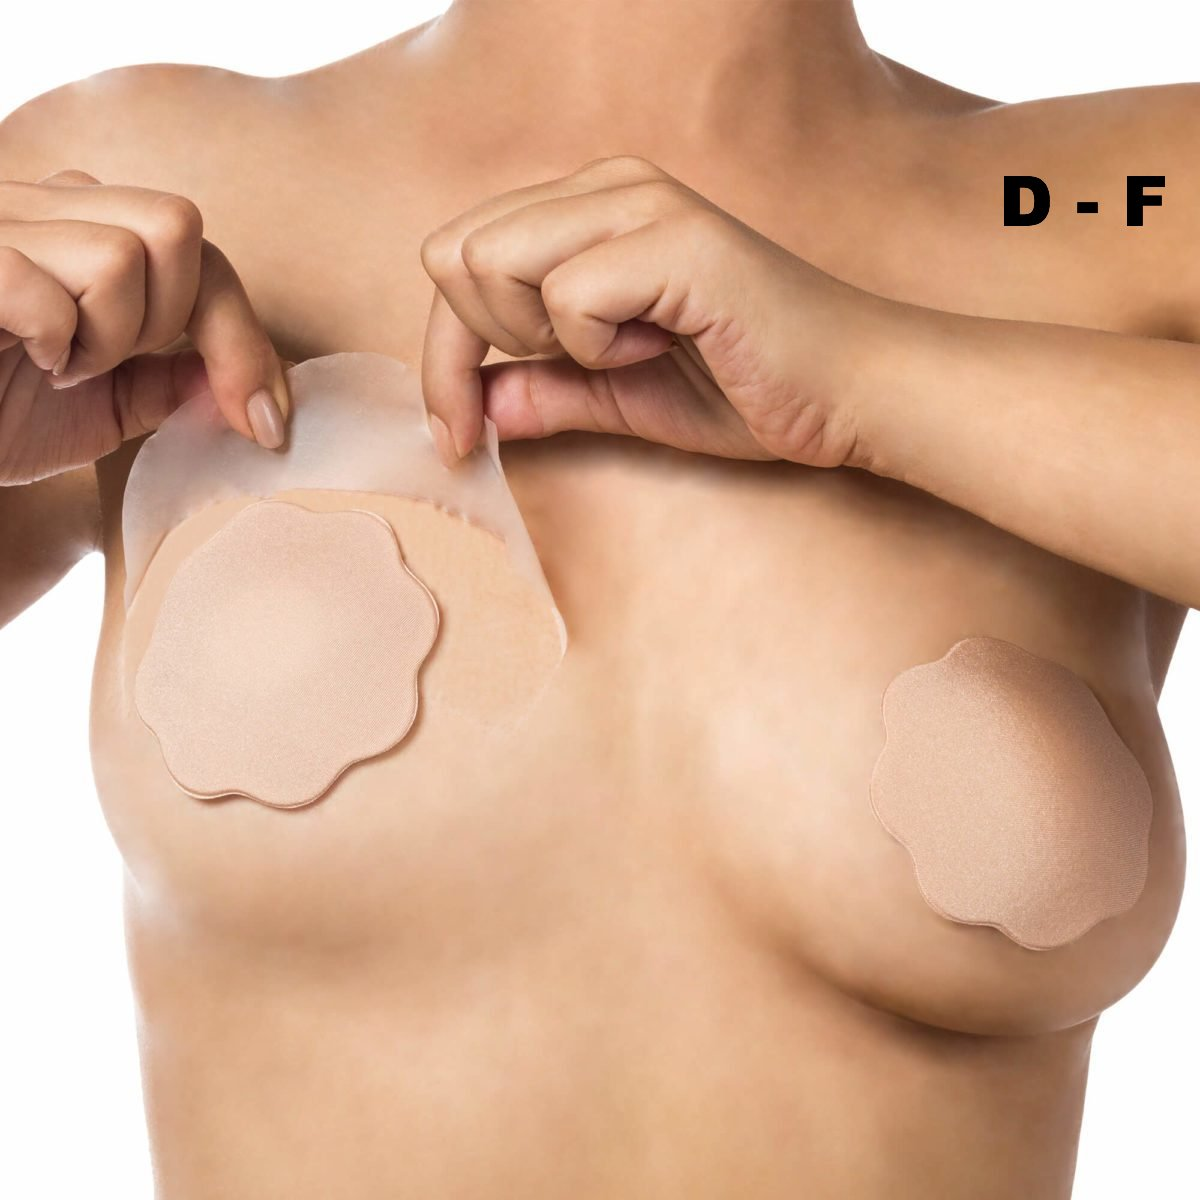 Bye Bra breast lift 3M medical tape cup D-F with Nude Silicone nipple covers on Tights Etc South Africa